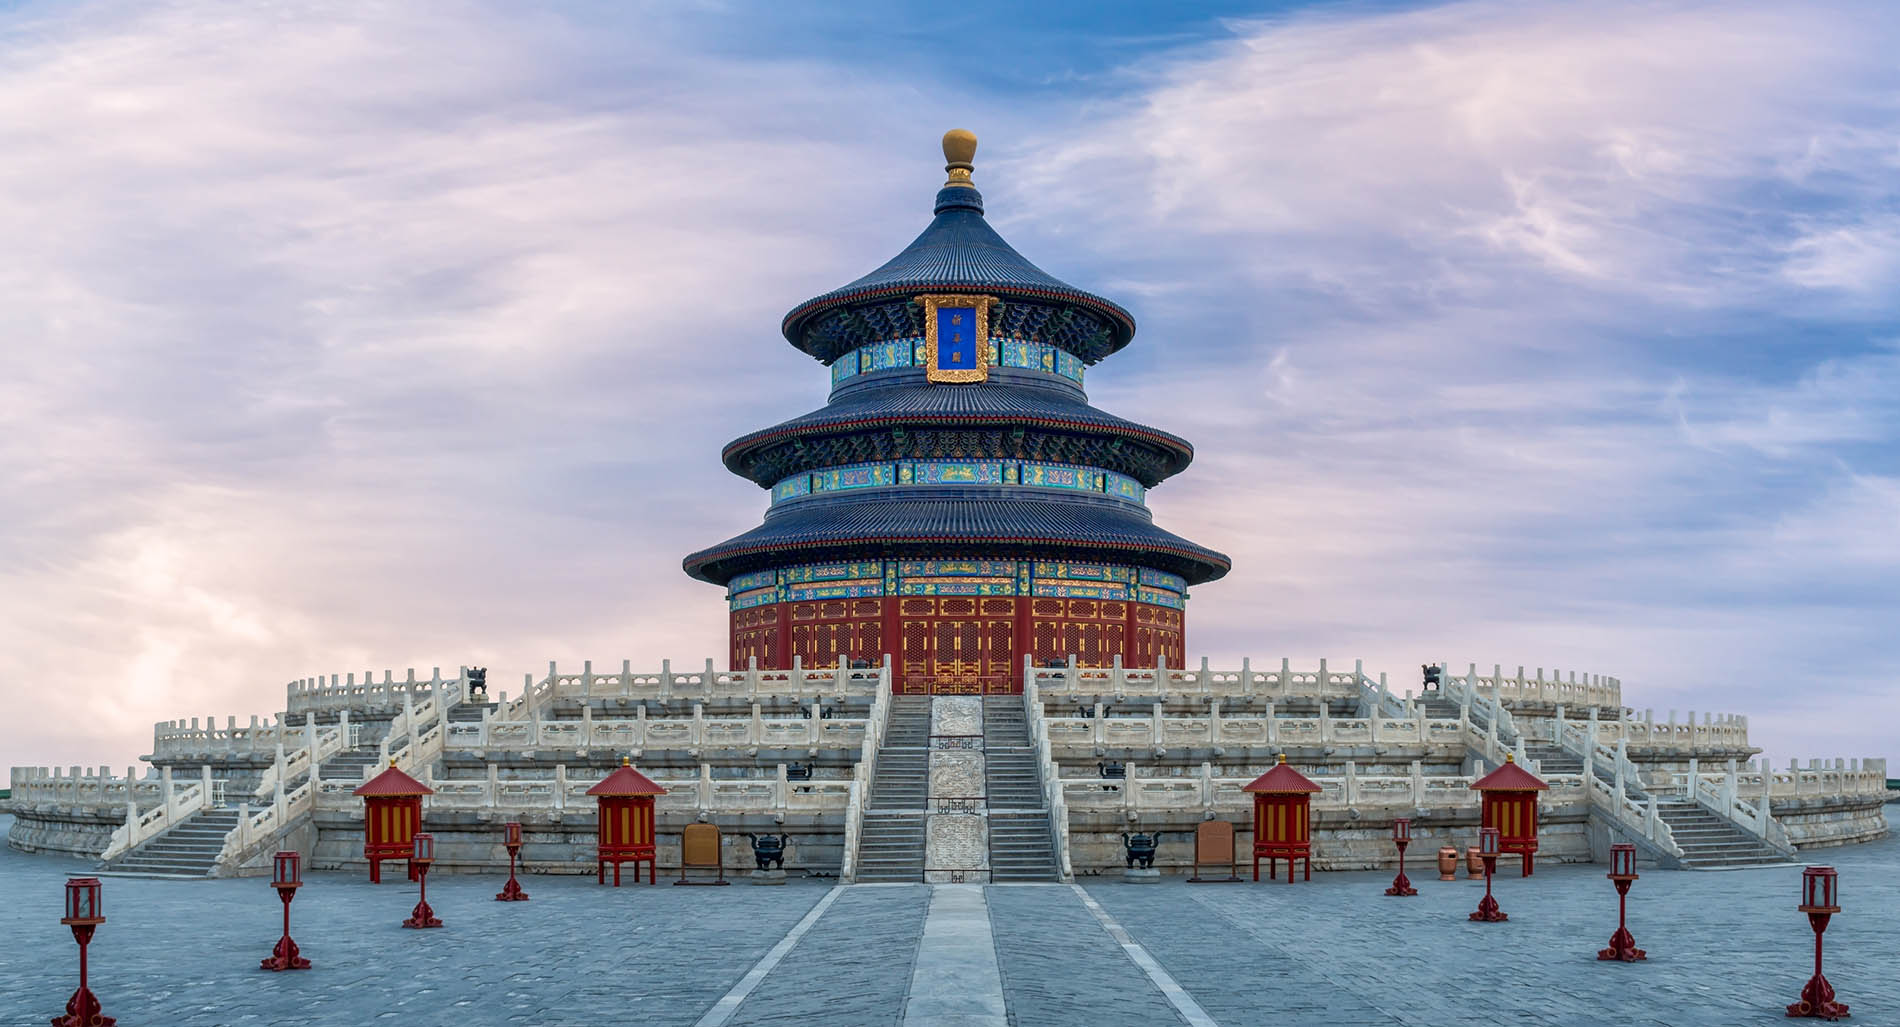 Temple of Heaven~Unique in its grandeur, architecture and color scheme, the Temple of Heaven is set within a beautiful park that serves as the backdrop to a whole array of Chinese cultural activities, from Taichi to Chinese Chess to patriotic singing troupes. There's even a marriage market there.